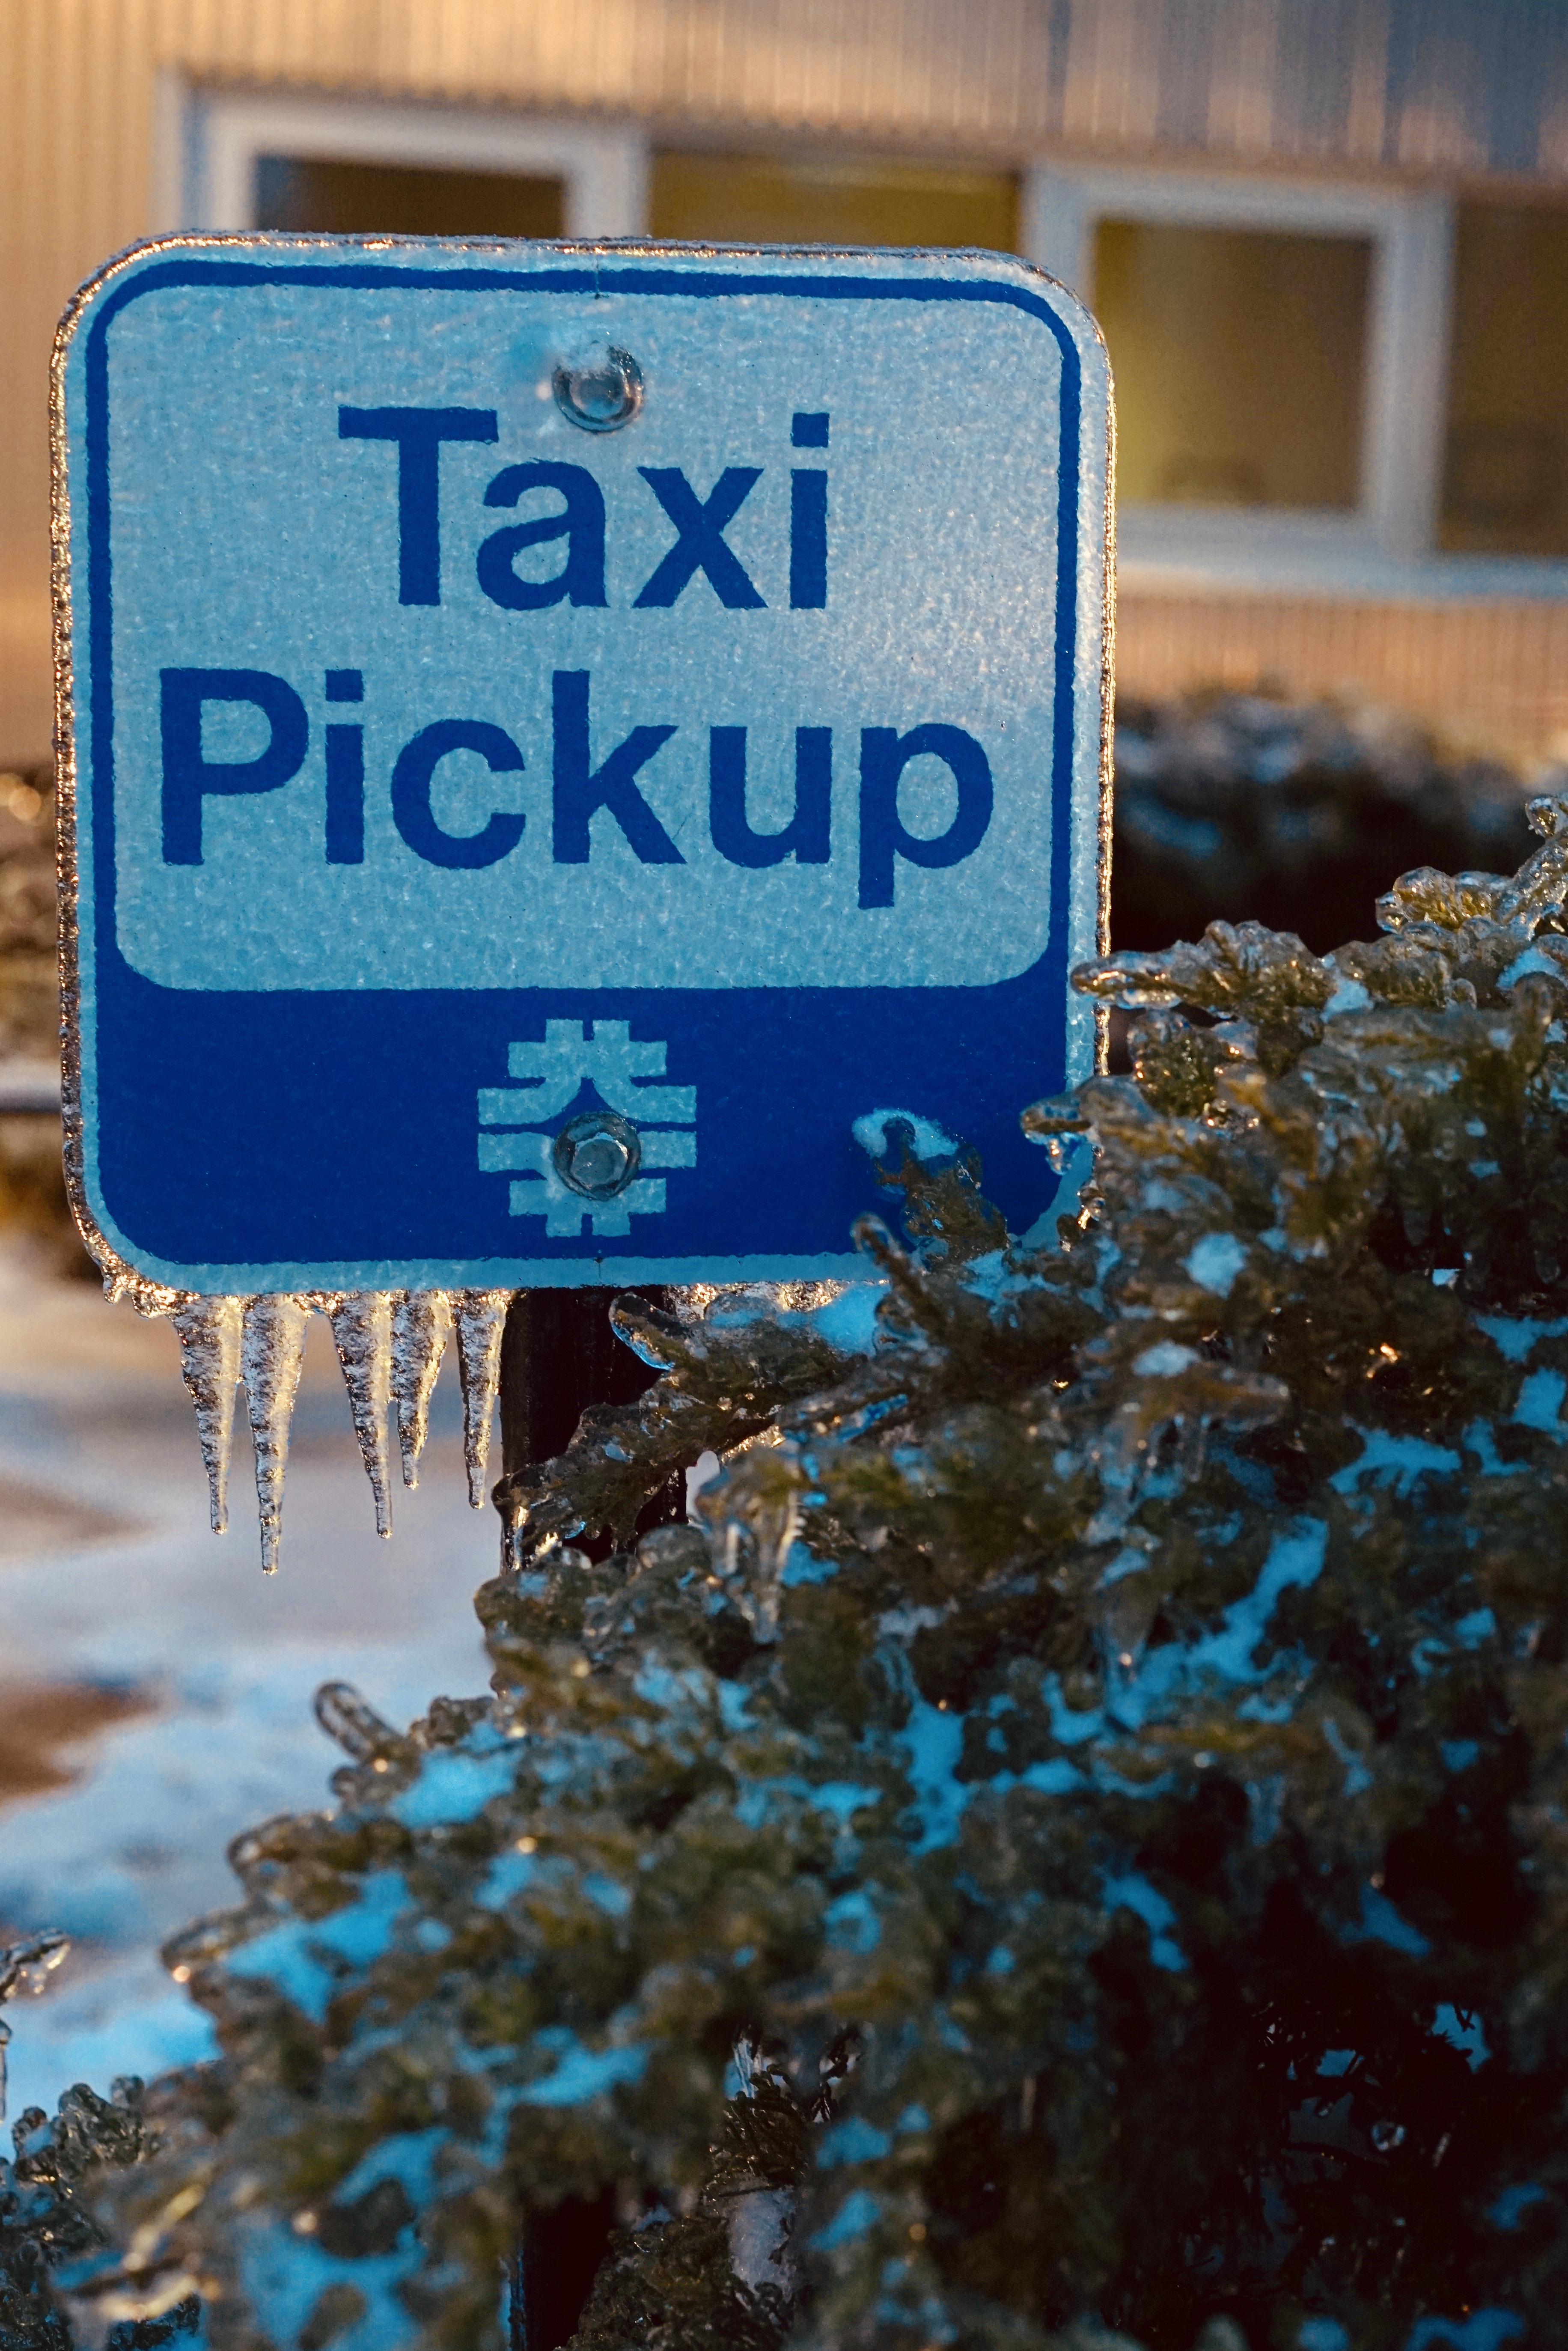 (1/4) Ice forms beneath the taxi pickup sign. winter, ice Photo: Leticia Shaddix